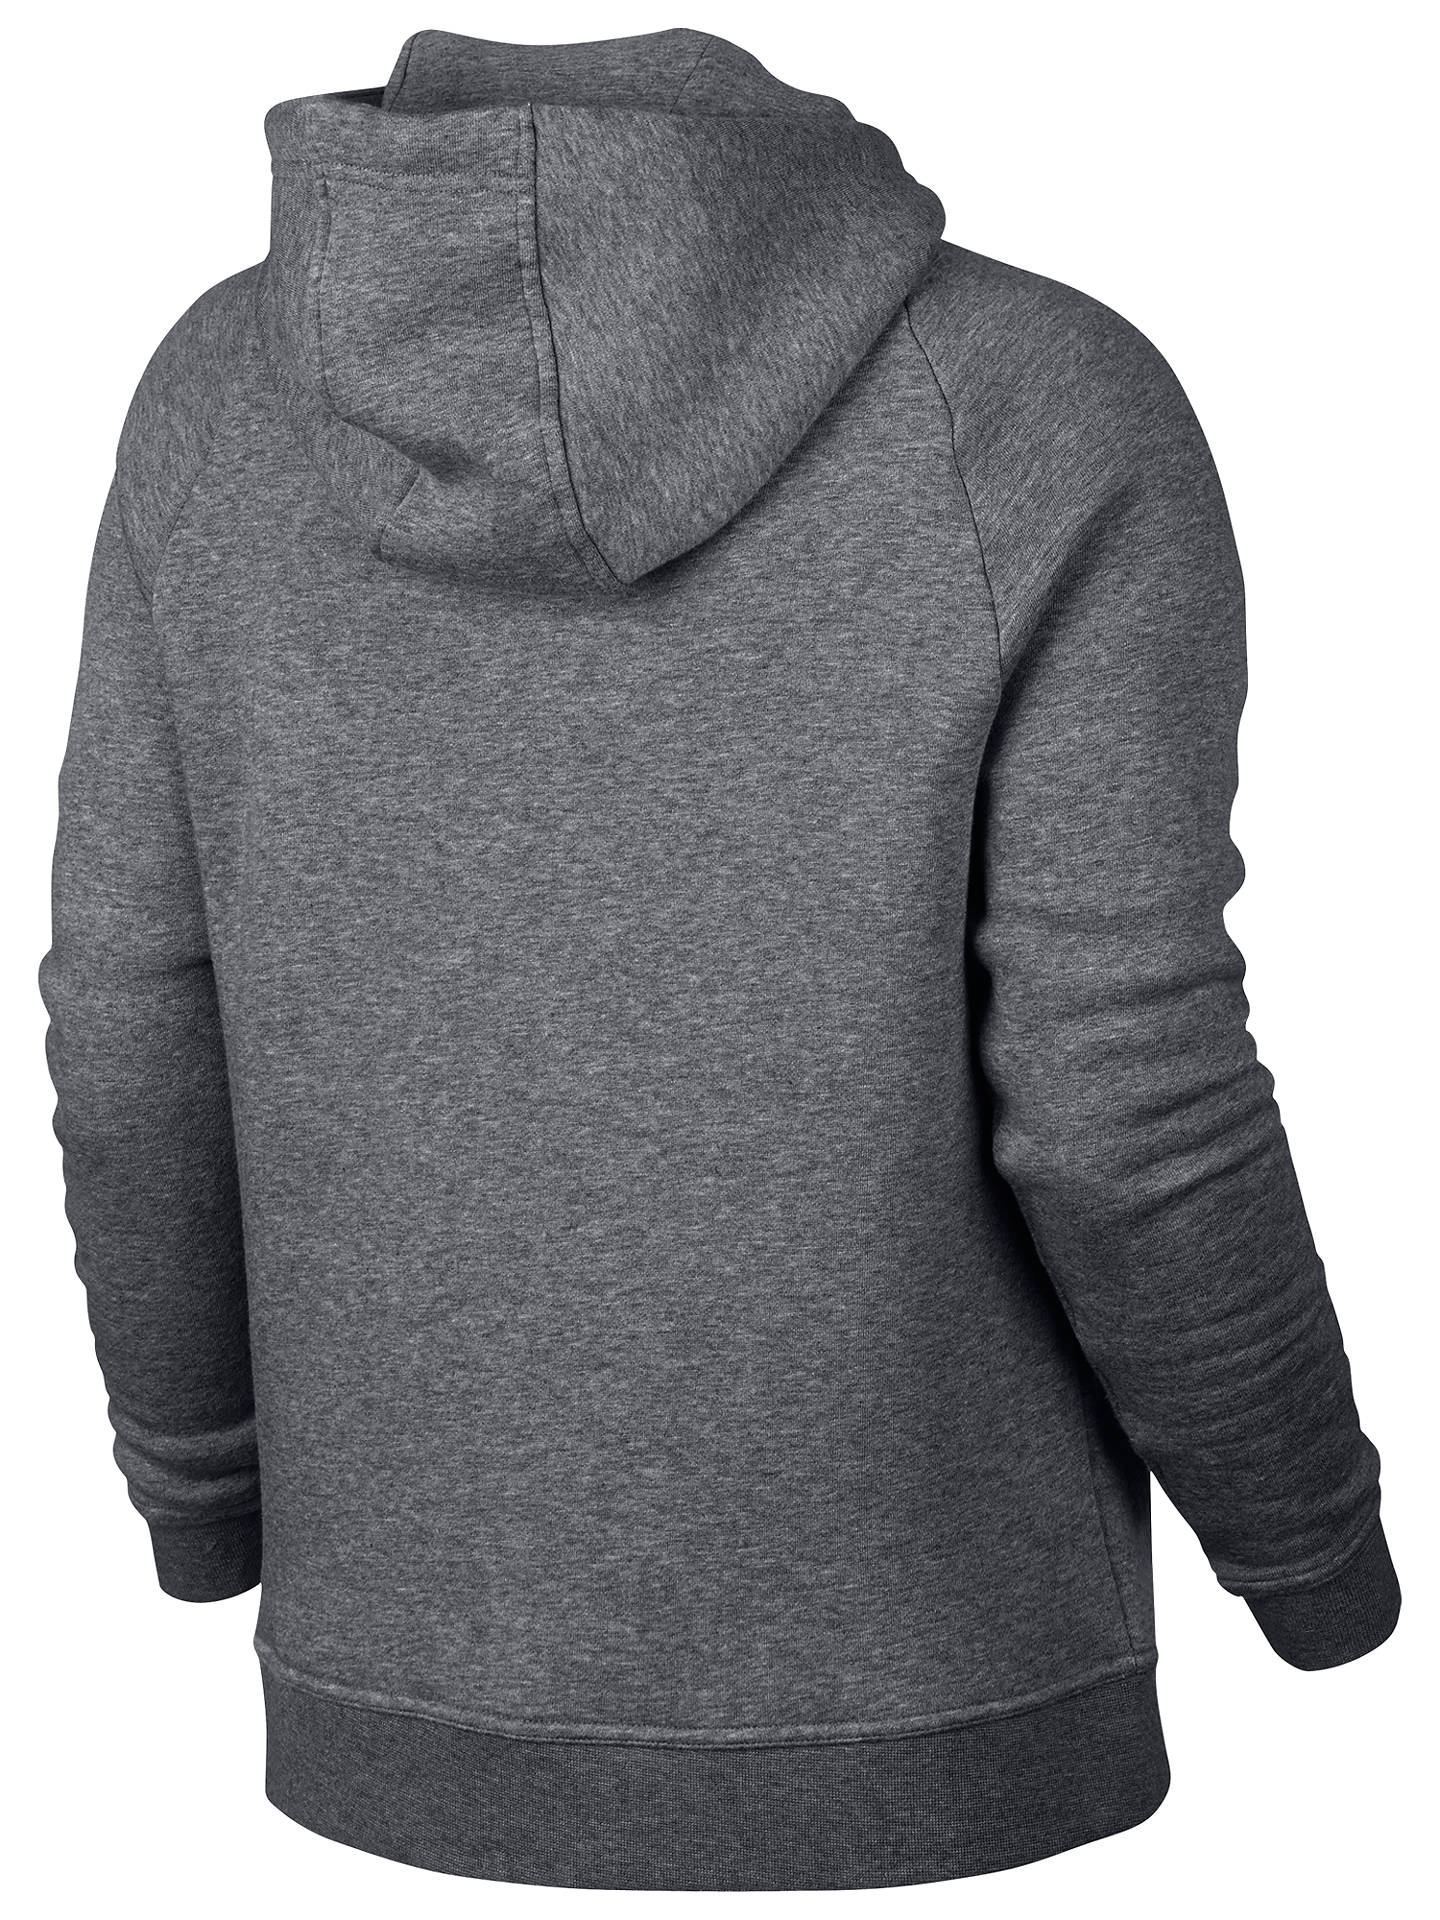 Buy Nike Sportswear Rally Hoodie, Grey, XS Online at johnlewis.com